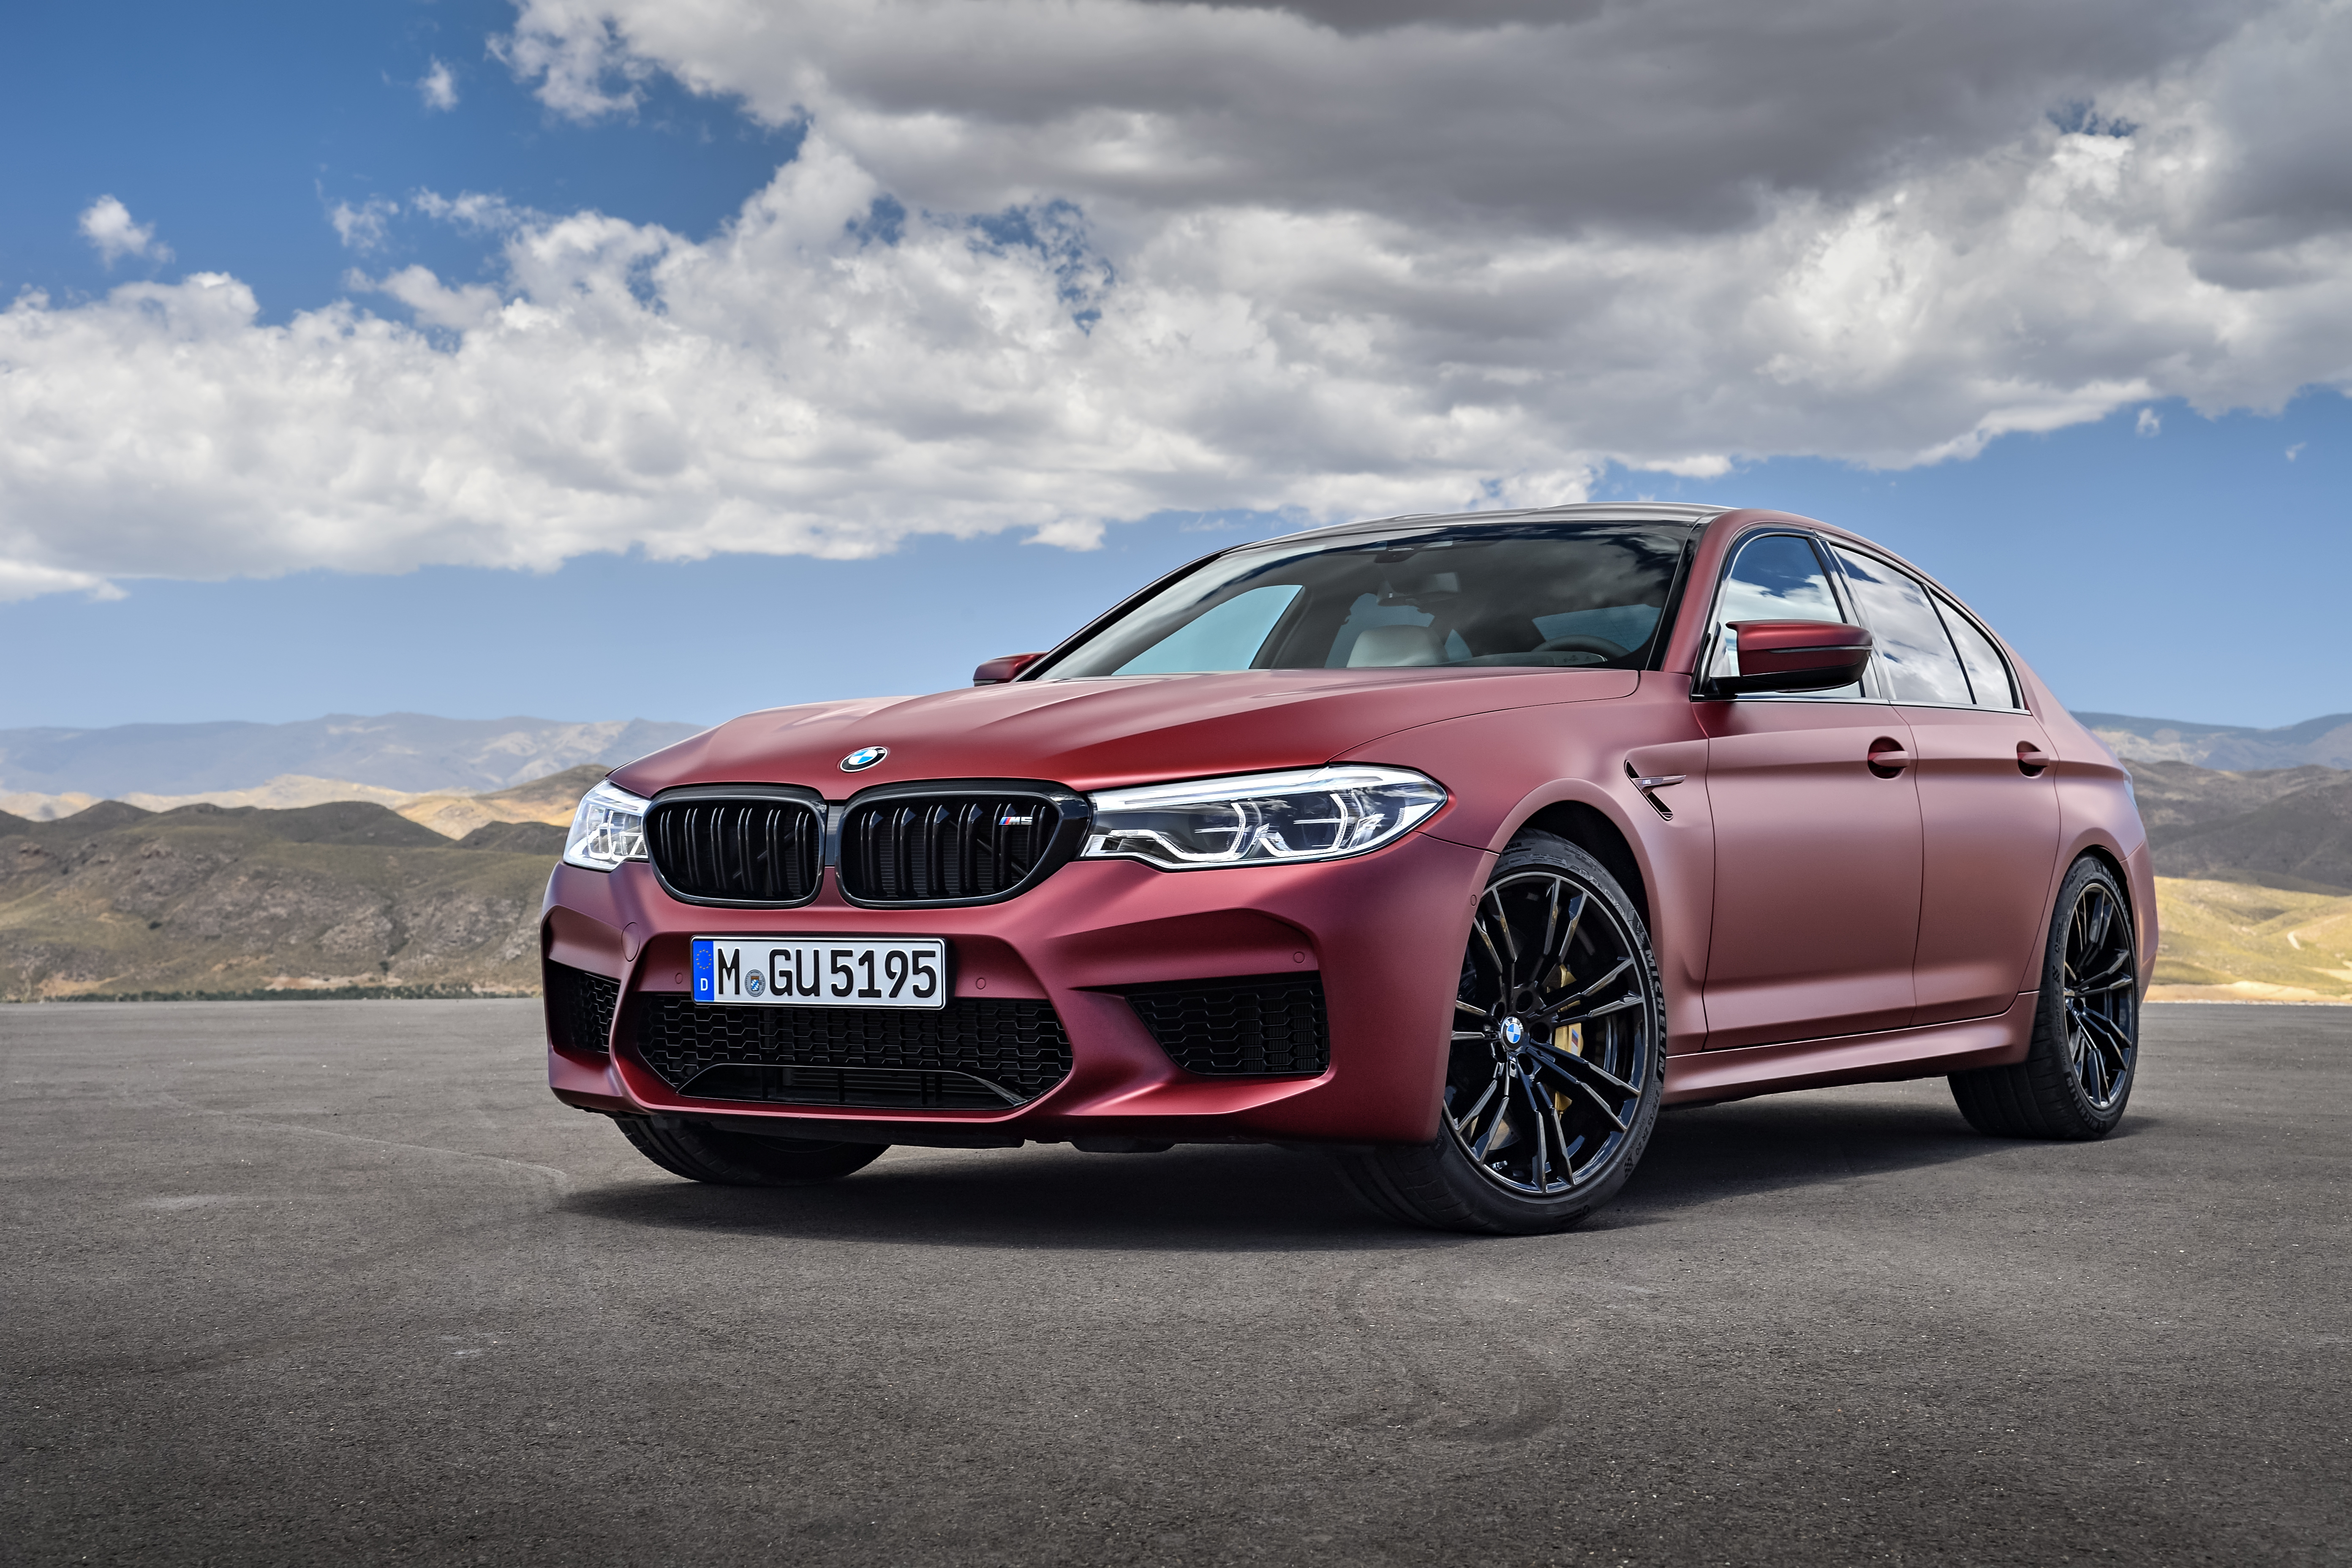 2018 M5 Release Date >> 2018 BMW M5 F90 Official Thread: Information, Specs ...